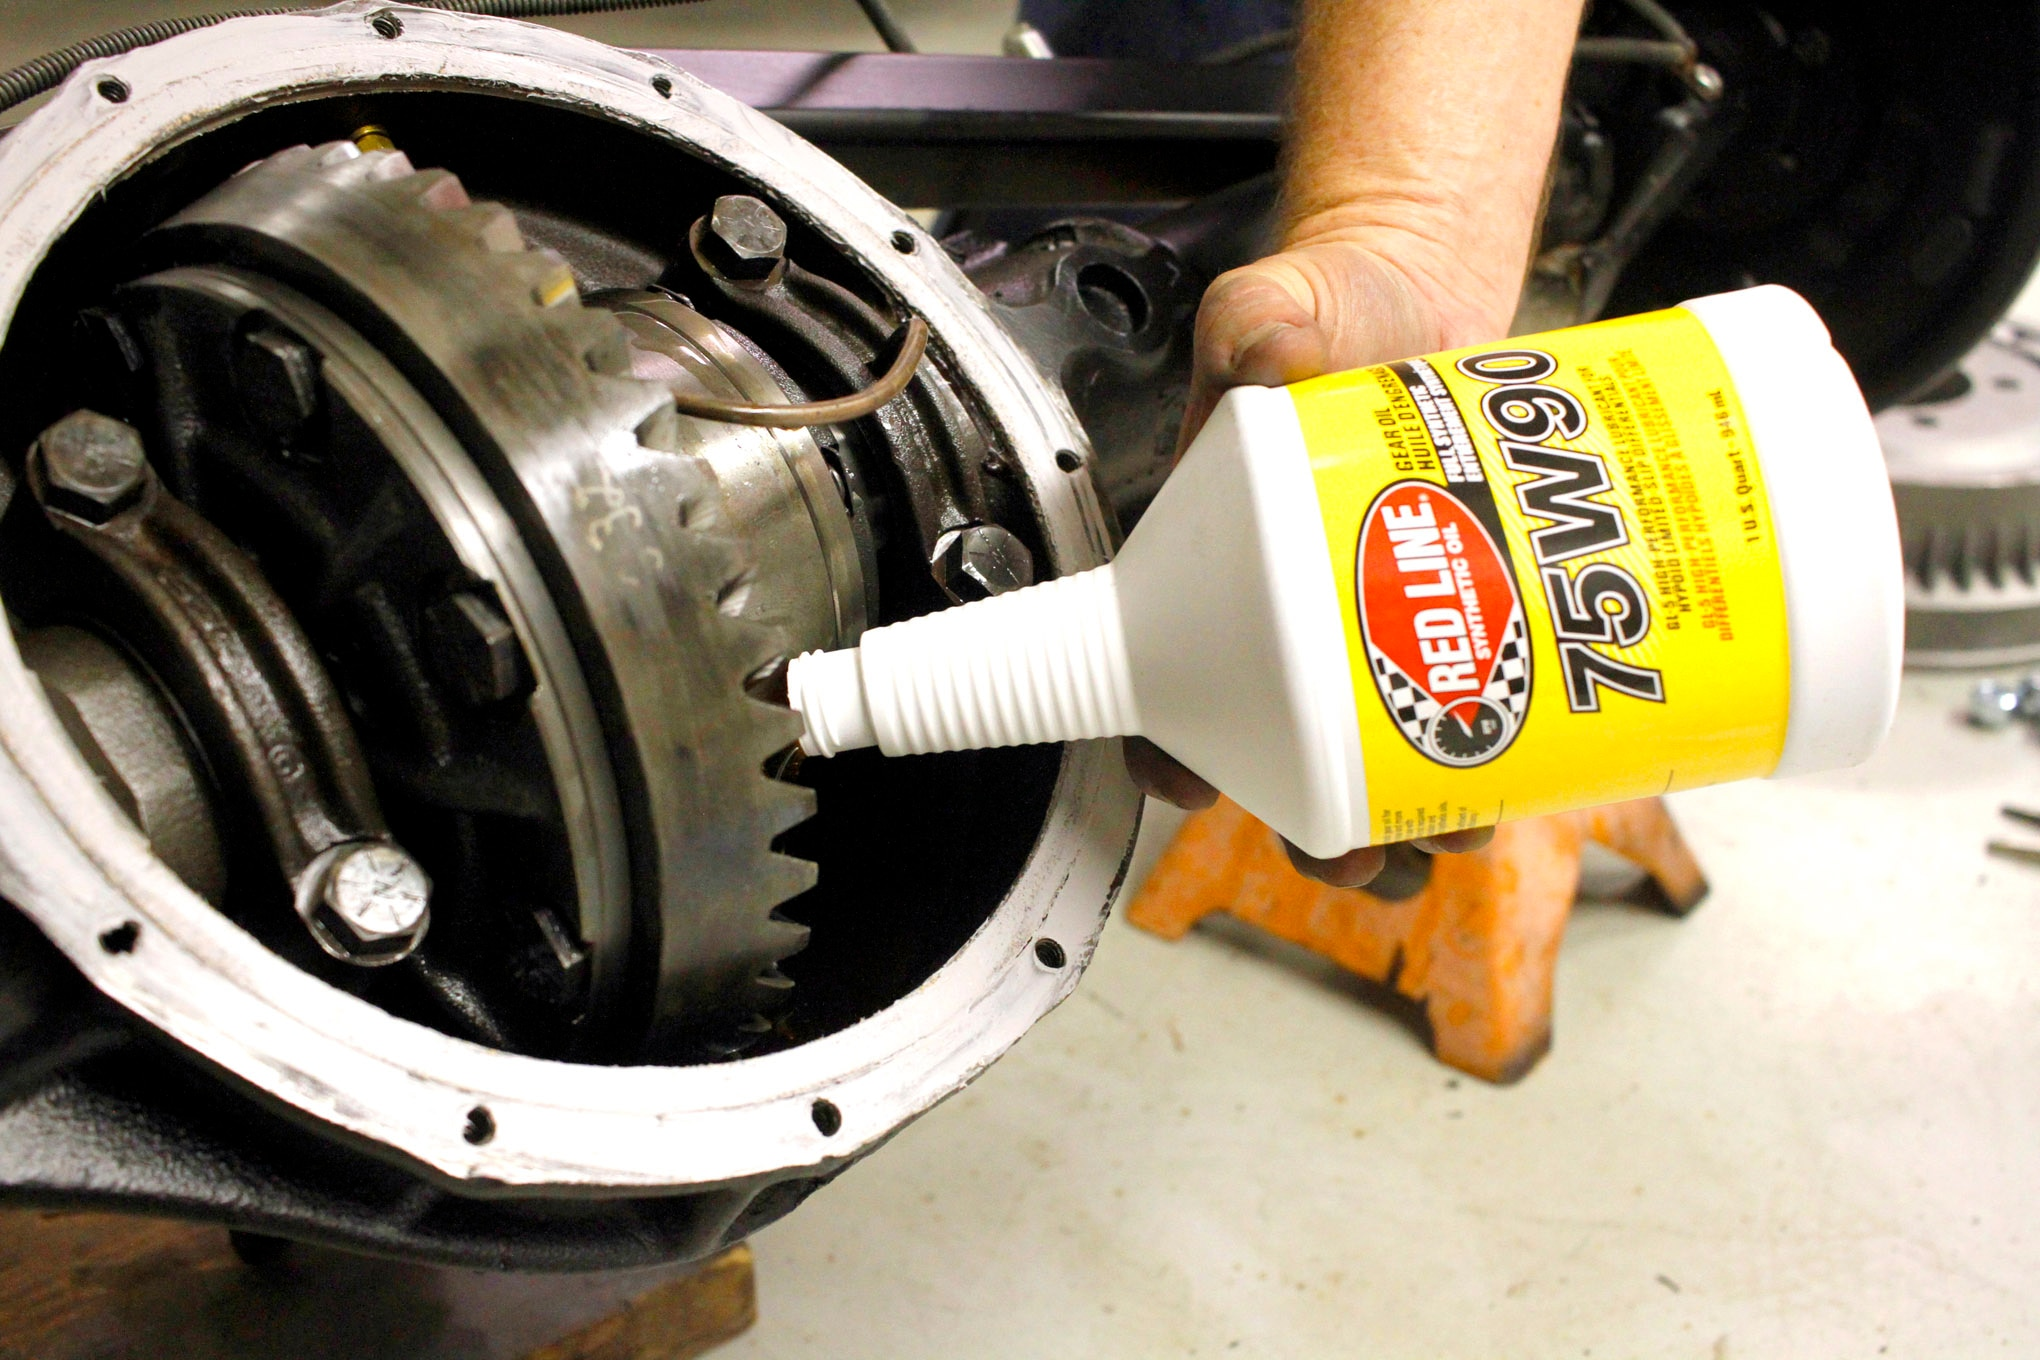 Since we had the rear cover off the axle, it was easy to fill the differential without having to pump fluid into the fill hole. We added about two quarts of Red Line 75W90 GL-5 synthetic gear oil as a start and checked the final fluid level after the axle was mounted back on the Jeep.